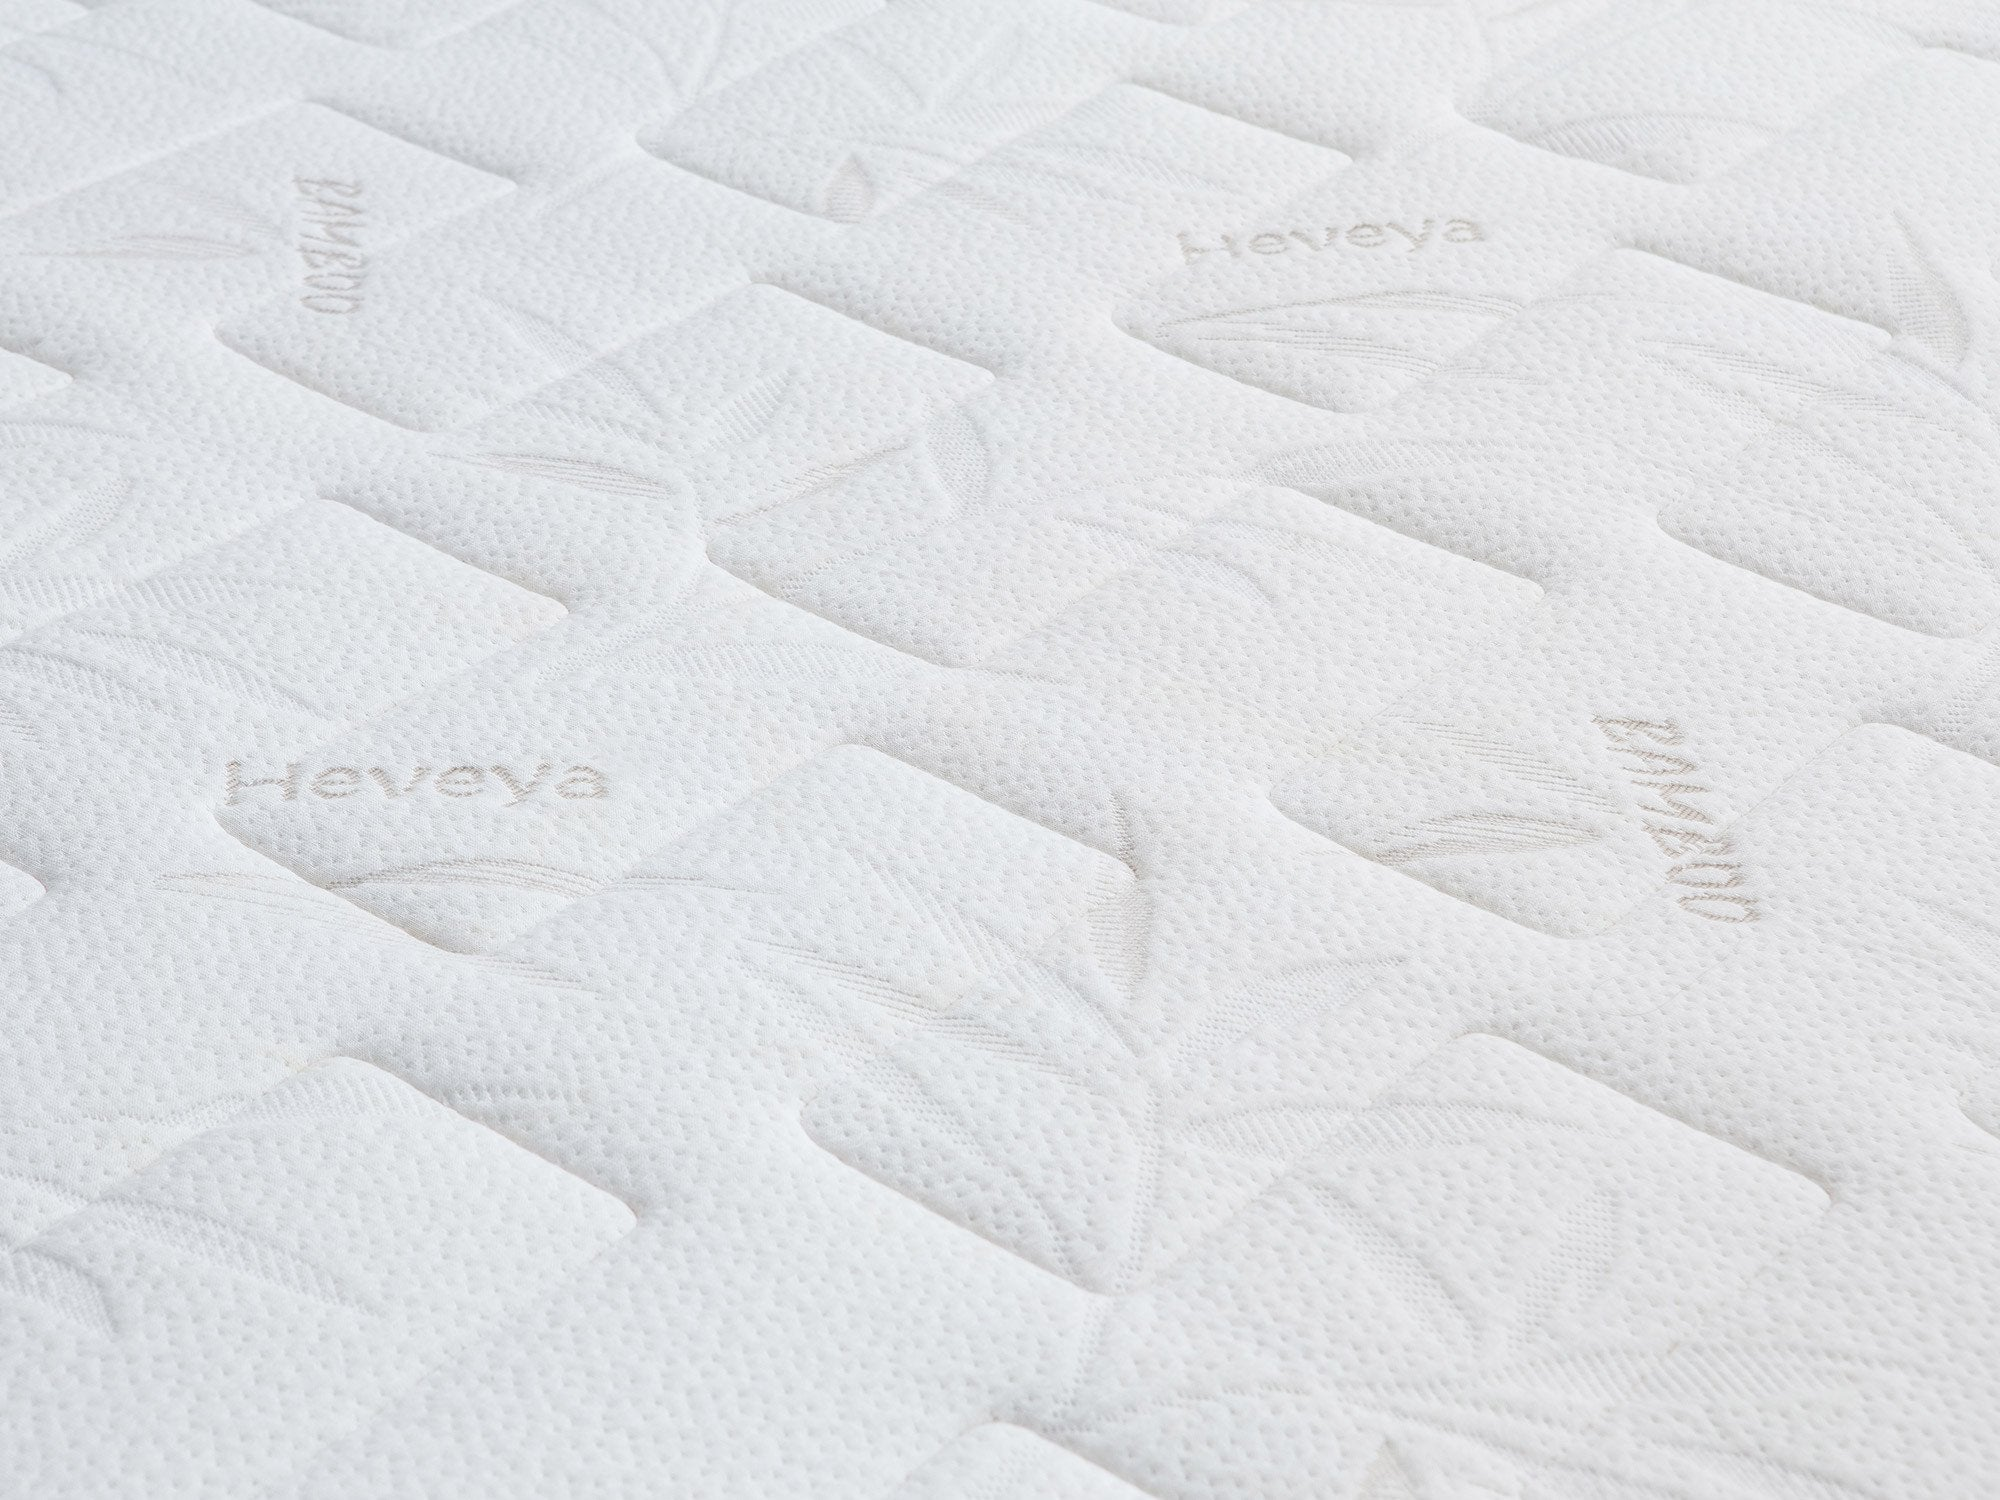 Heveya natural organic latex mattress II bamboo cover